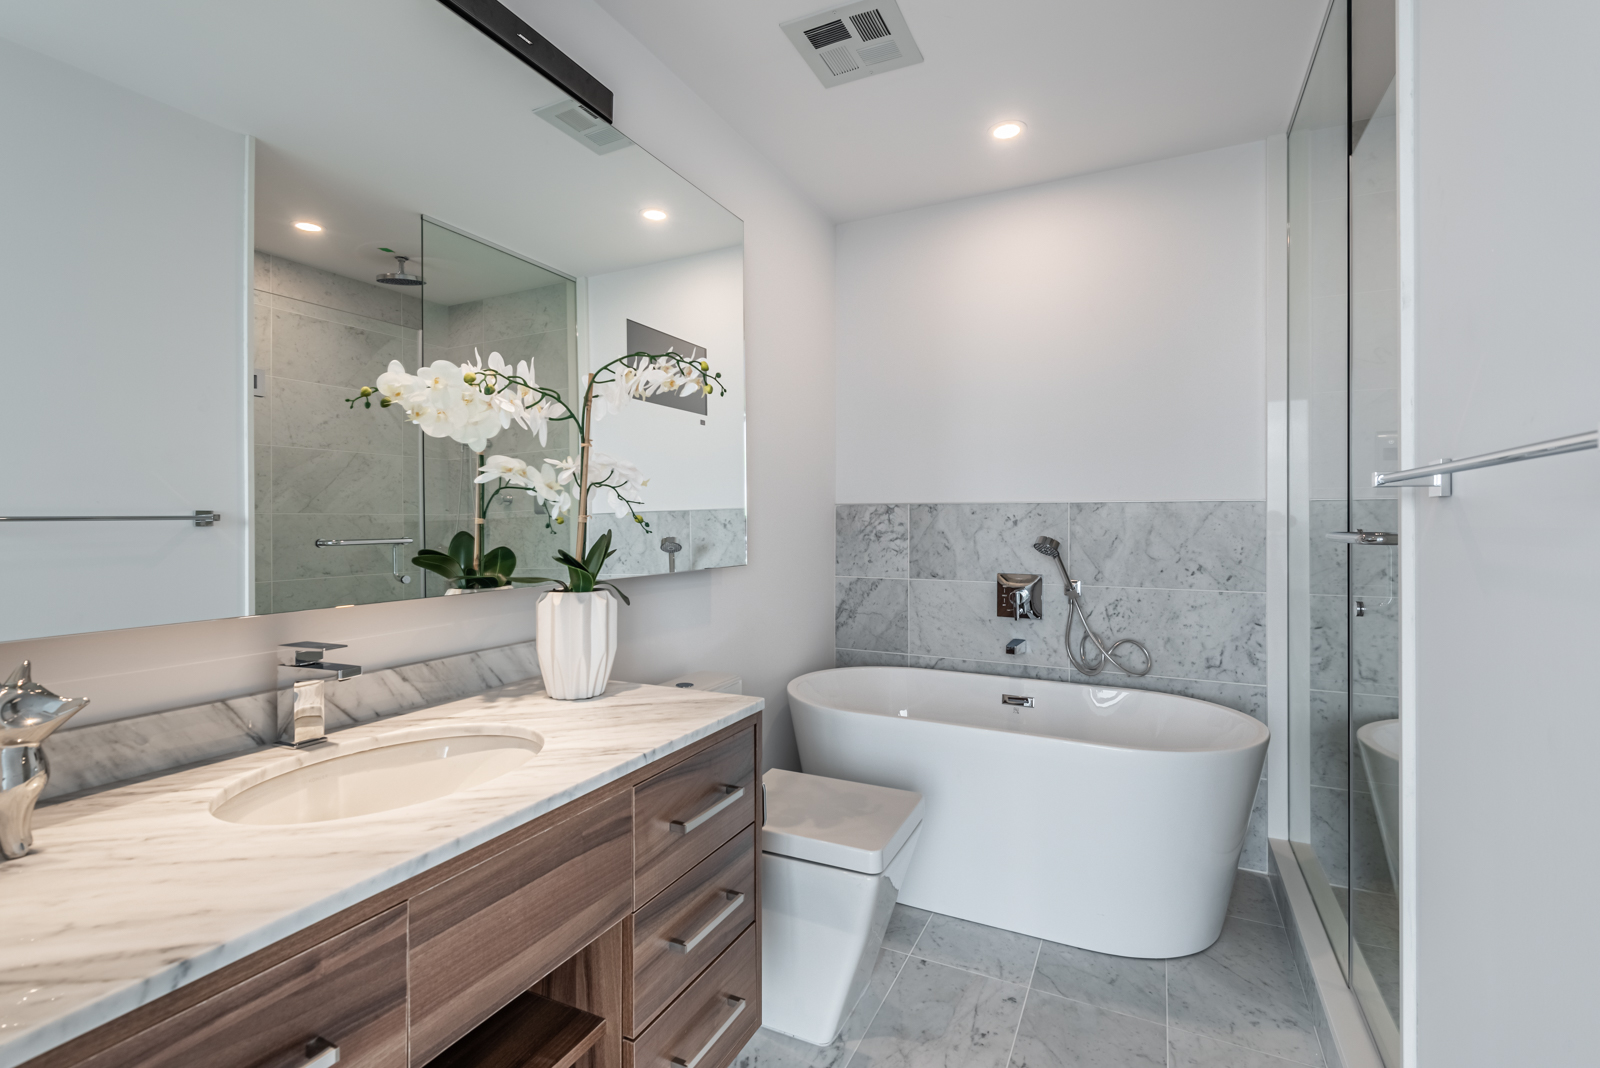 Freestanding soaking tub, large mirror and sink with vase.